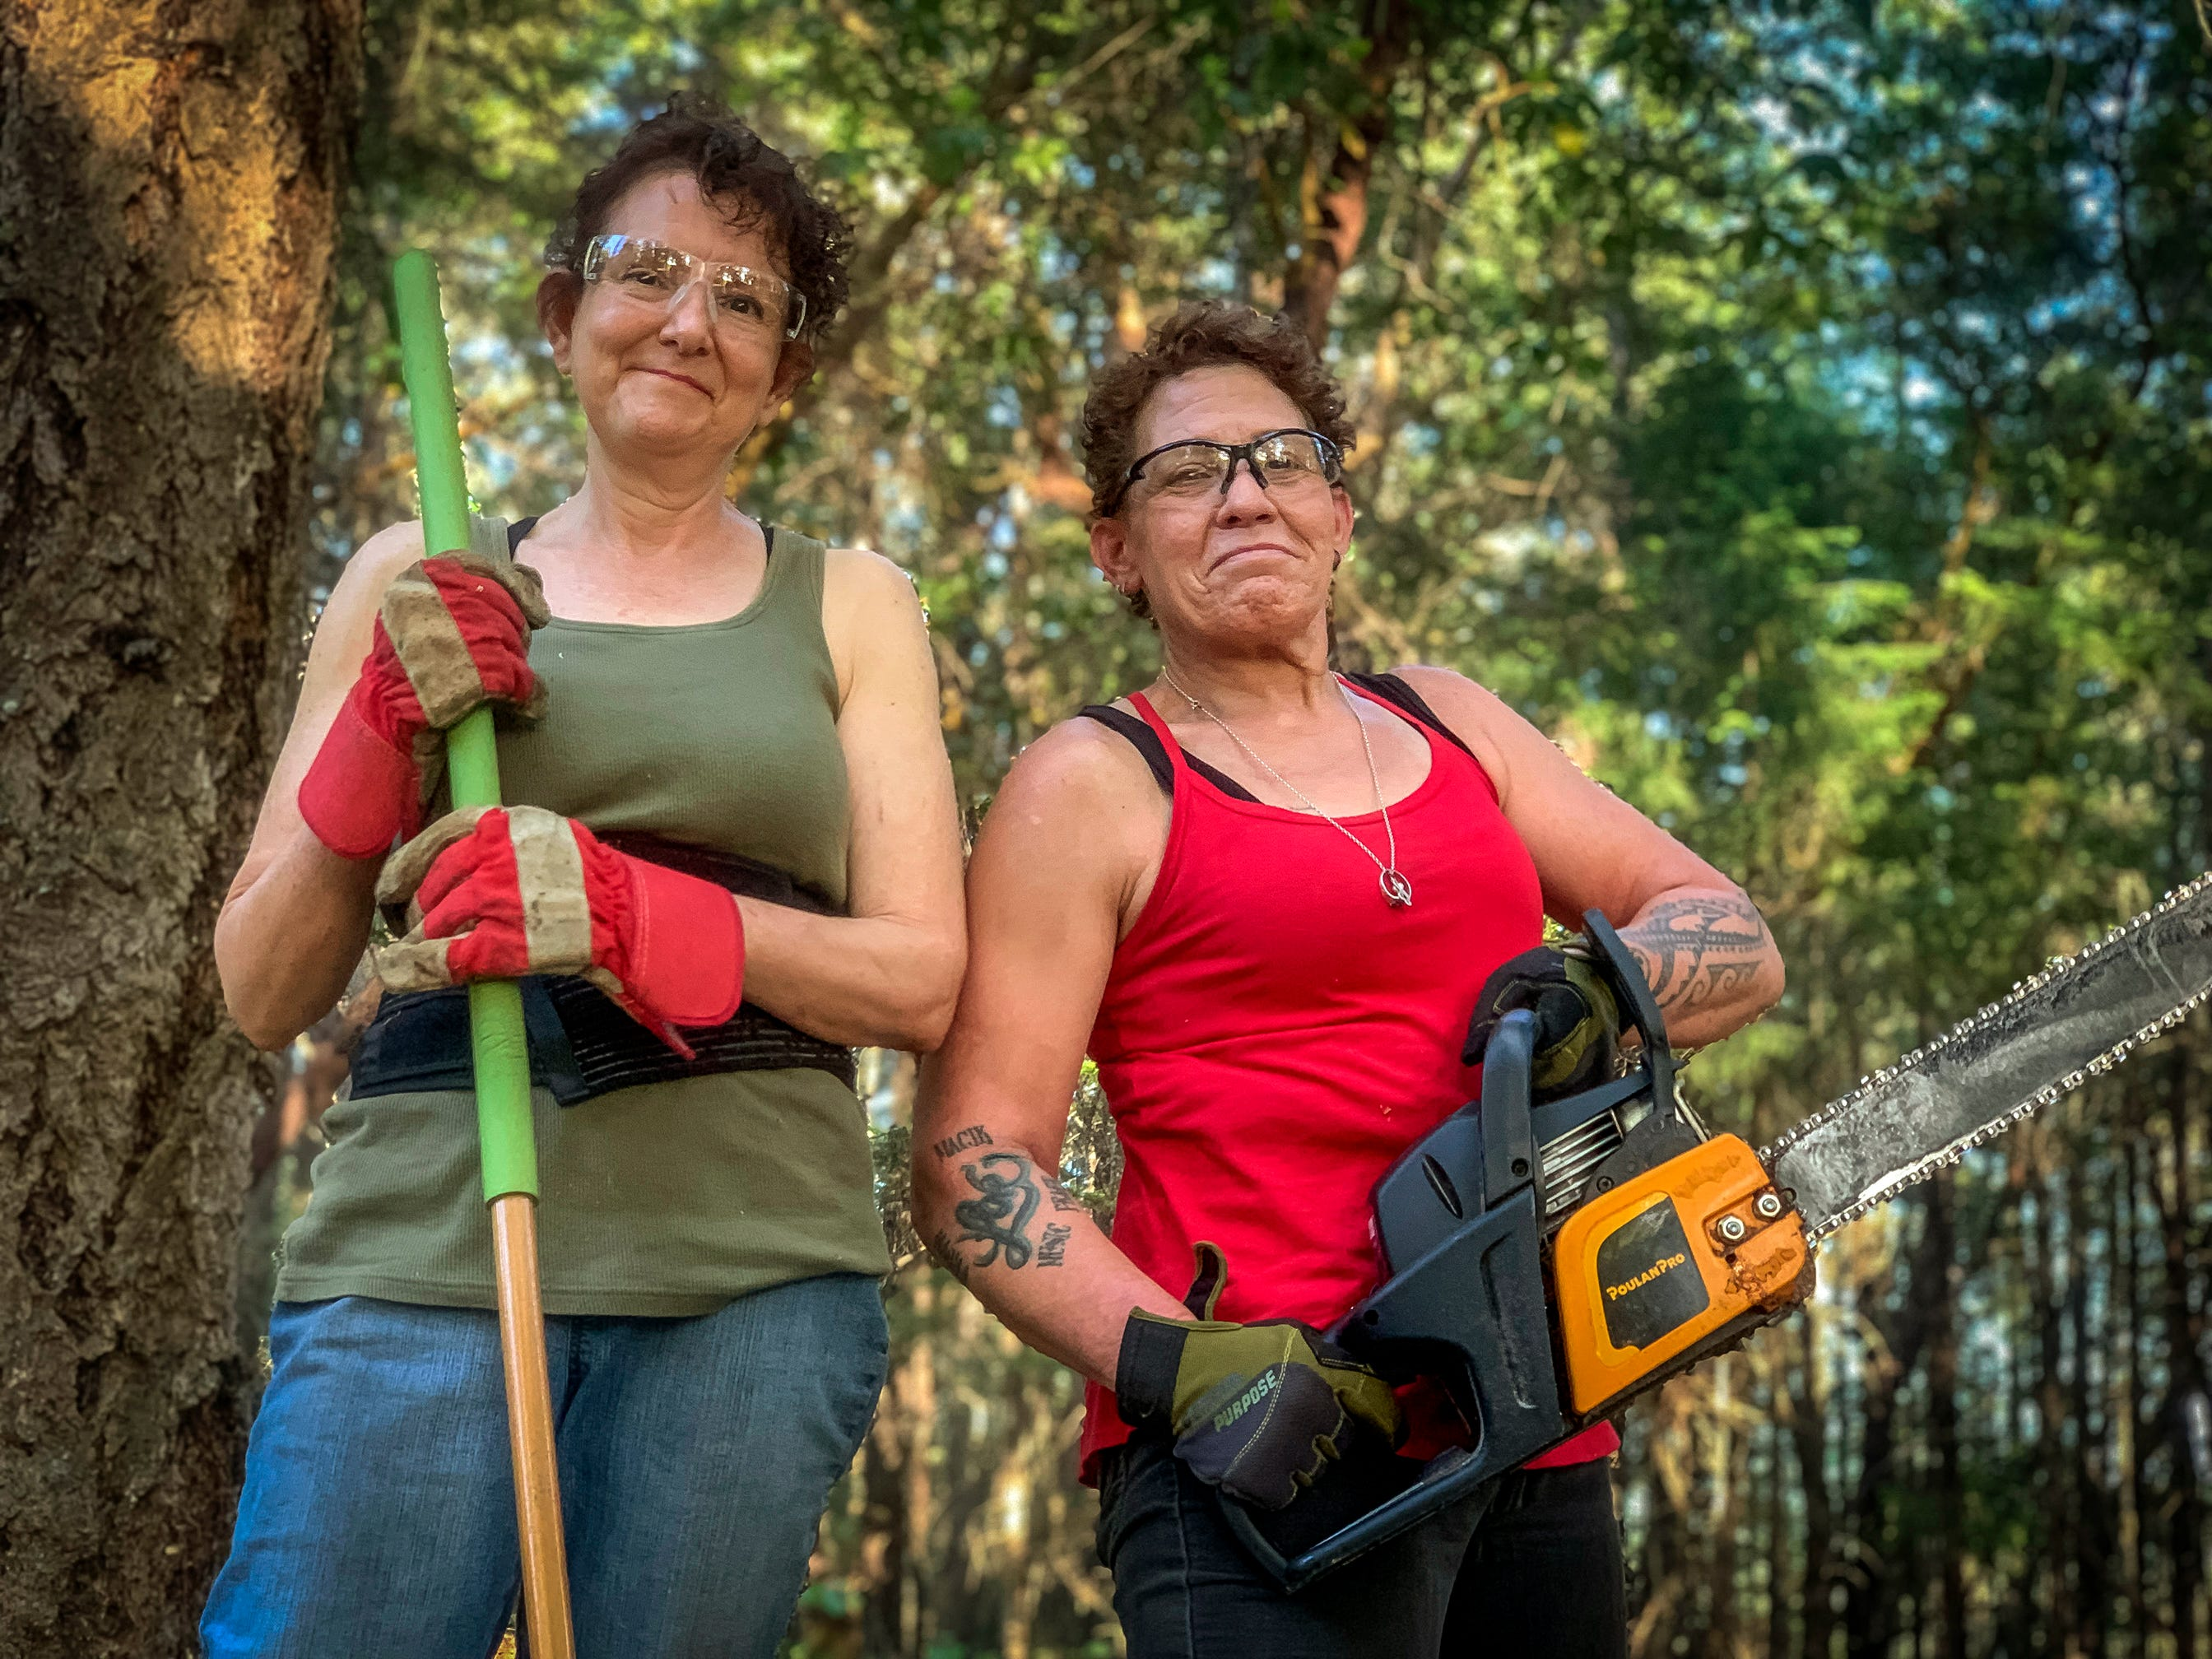 Homeowner Dawn Feldman, left with help from friend and neighbor Victoria Wertheimer is working through her wildfire fears by clearing underbrush and debris to create defensible space around her home near Merlin, Oregon. Feldman is new to the area and to wildfire threat and admits she became scared when she learned that Merlin tops a list of areas most at risk of a devastating wildlife like those in Redding and Paradise California in 2018.